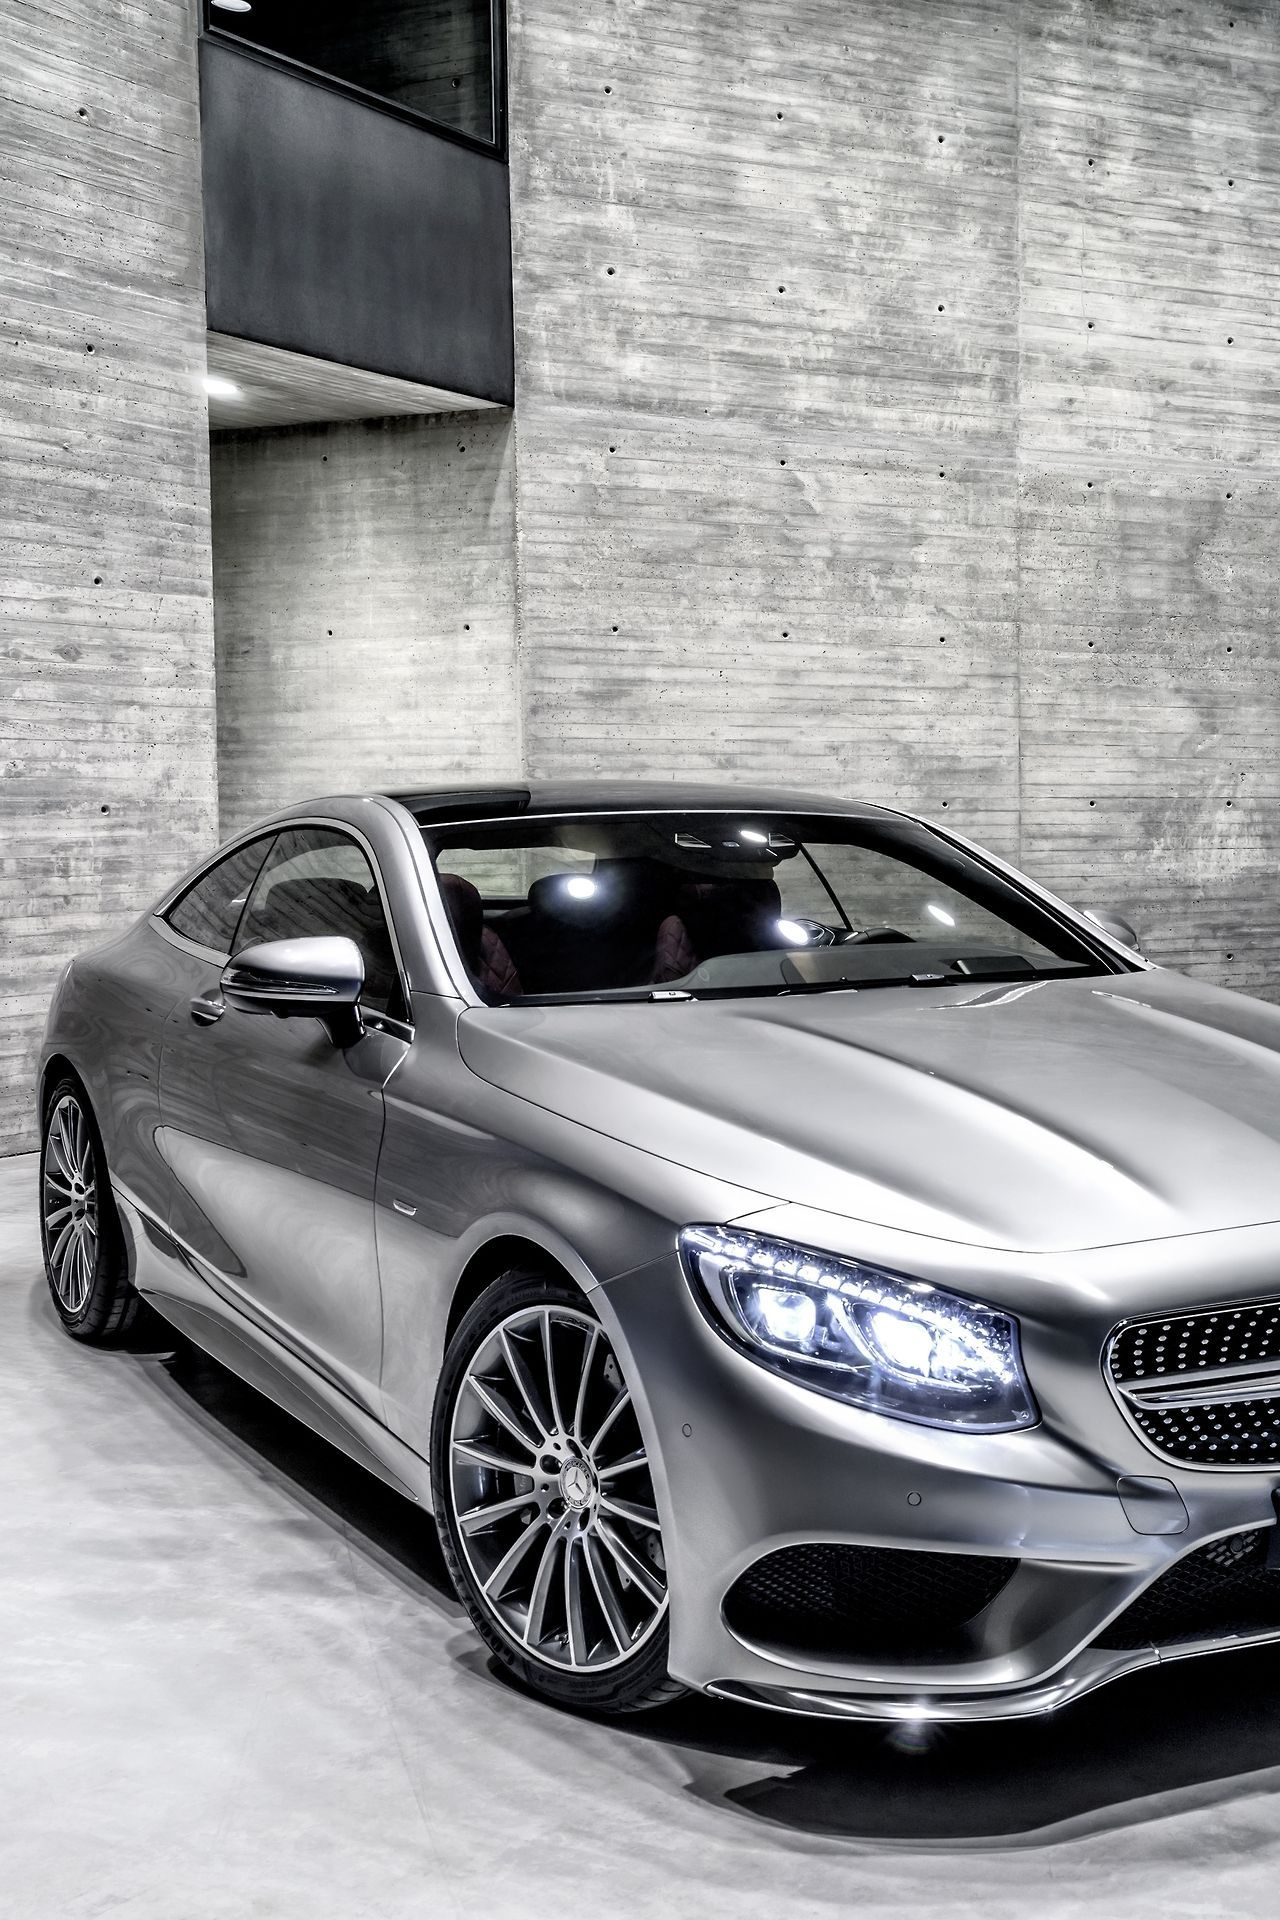 13 Amazing Best Sport Car 2019 With Images Benz S Class Benz